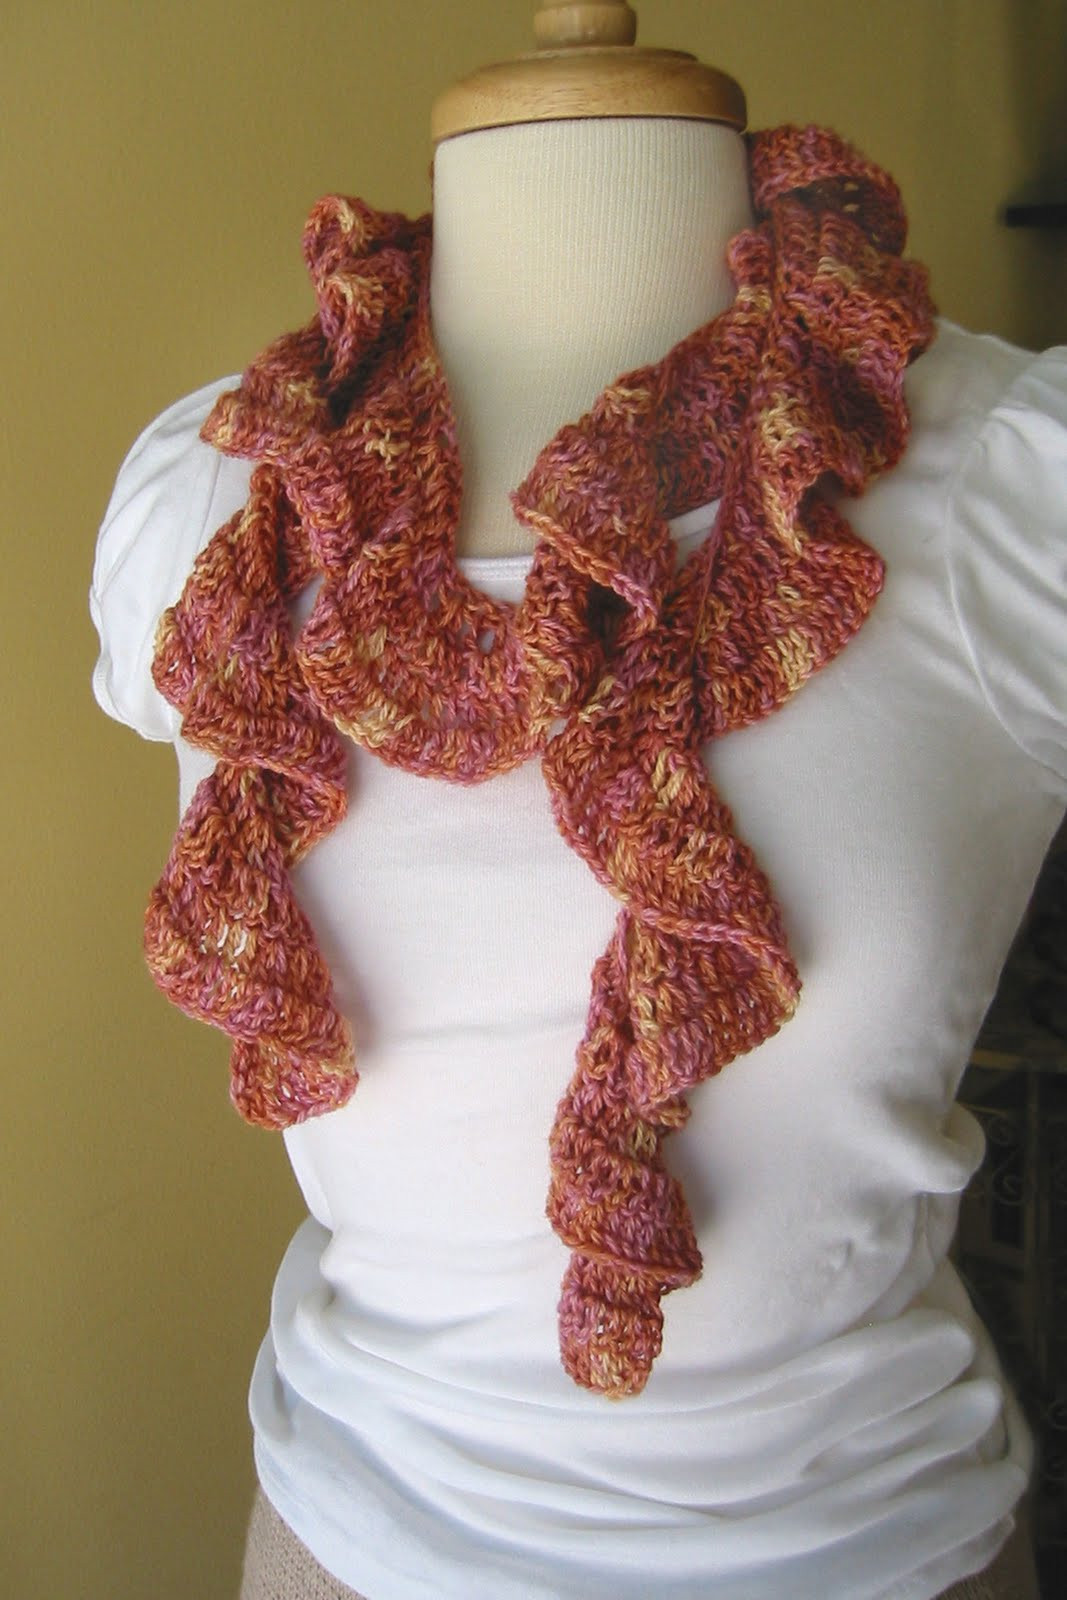 RUFFLE SPIRAL CROCHET SCARF PATTERN – Easy Crochet Patterns